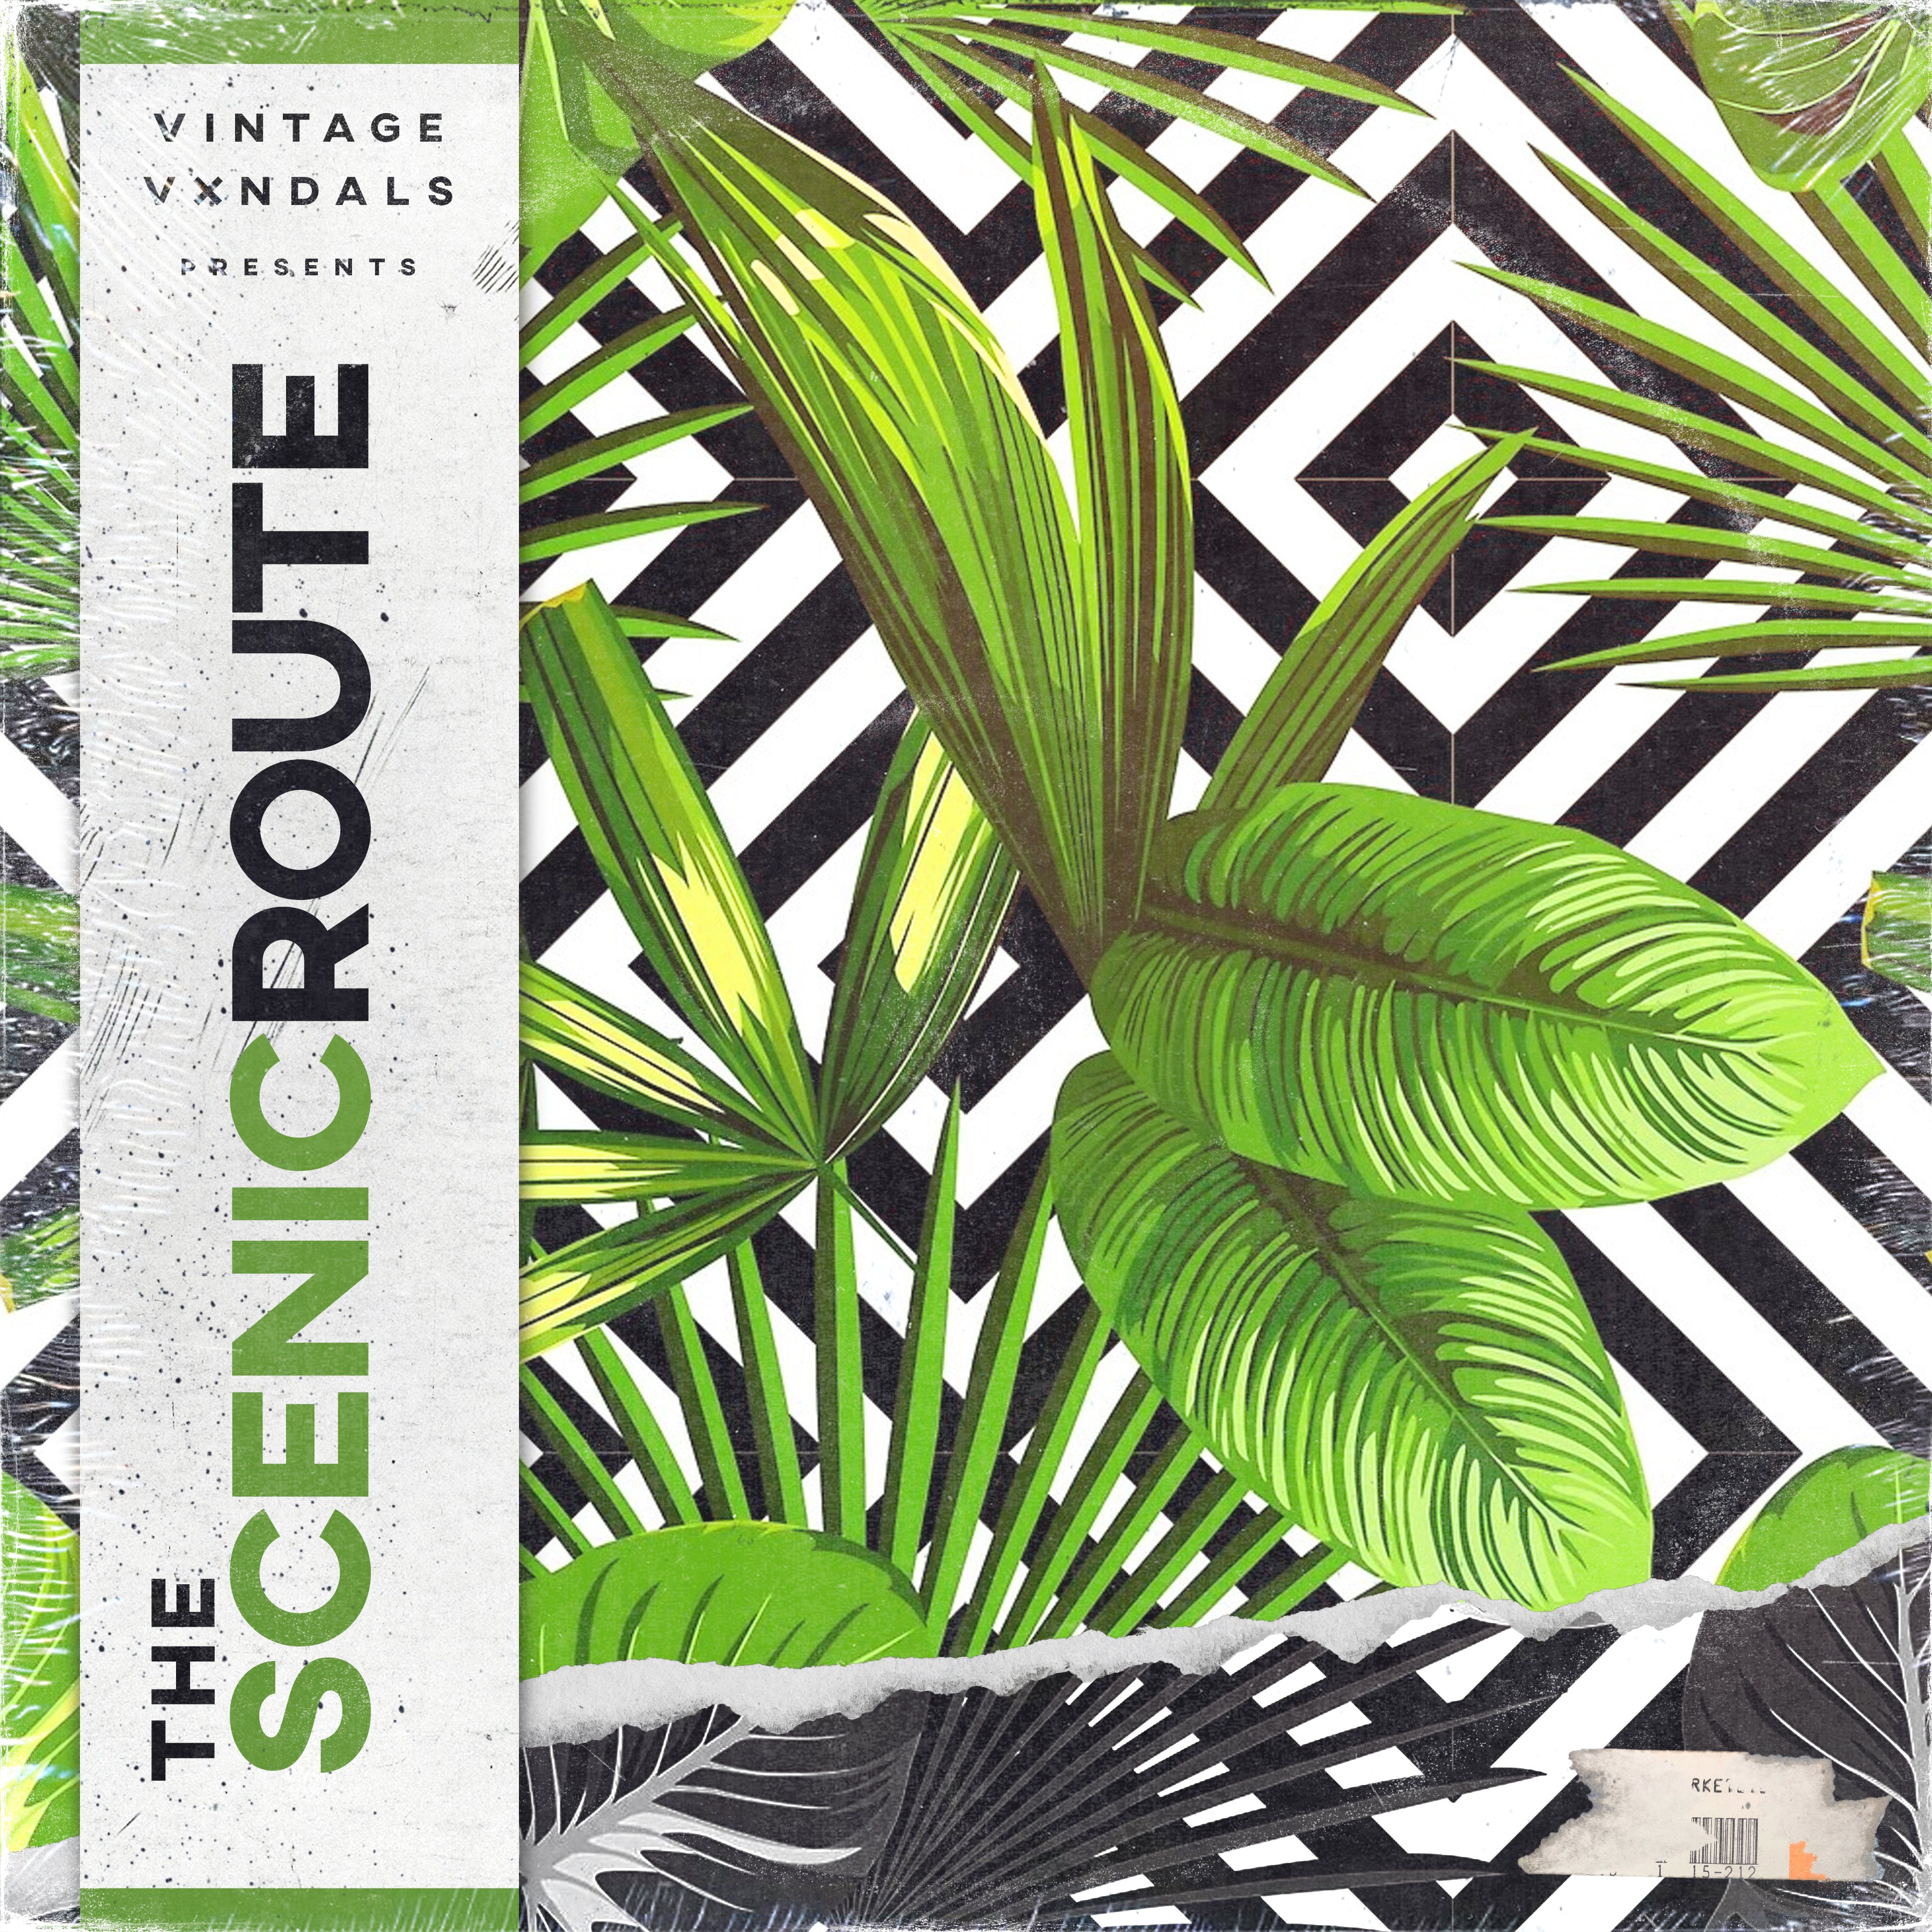 The Vintage Vxndals - The Scenic Route